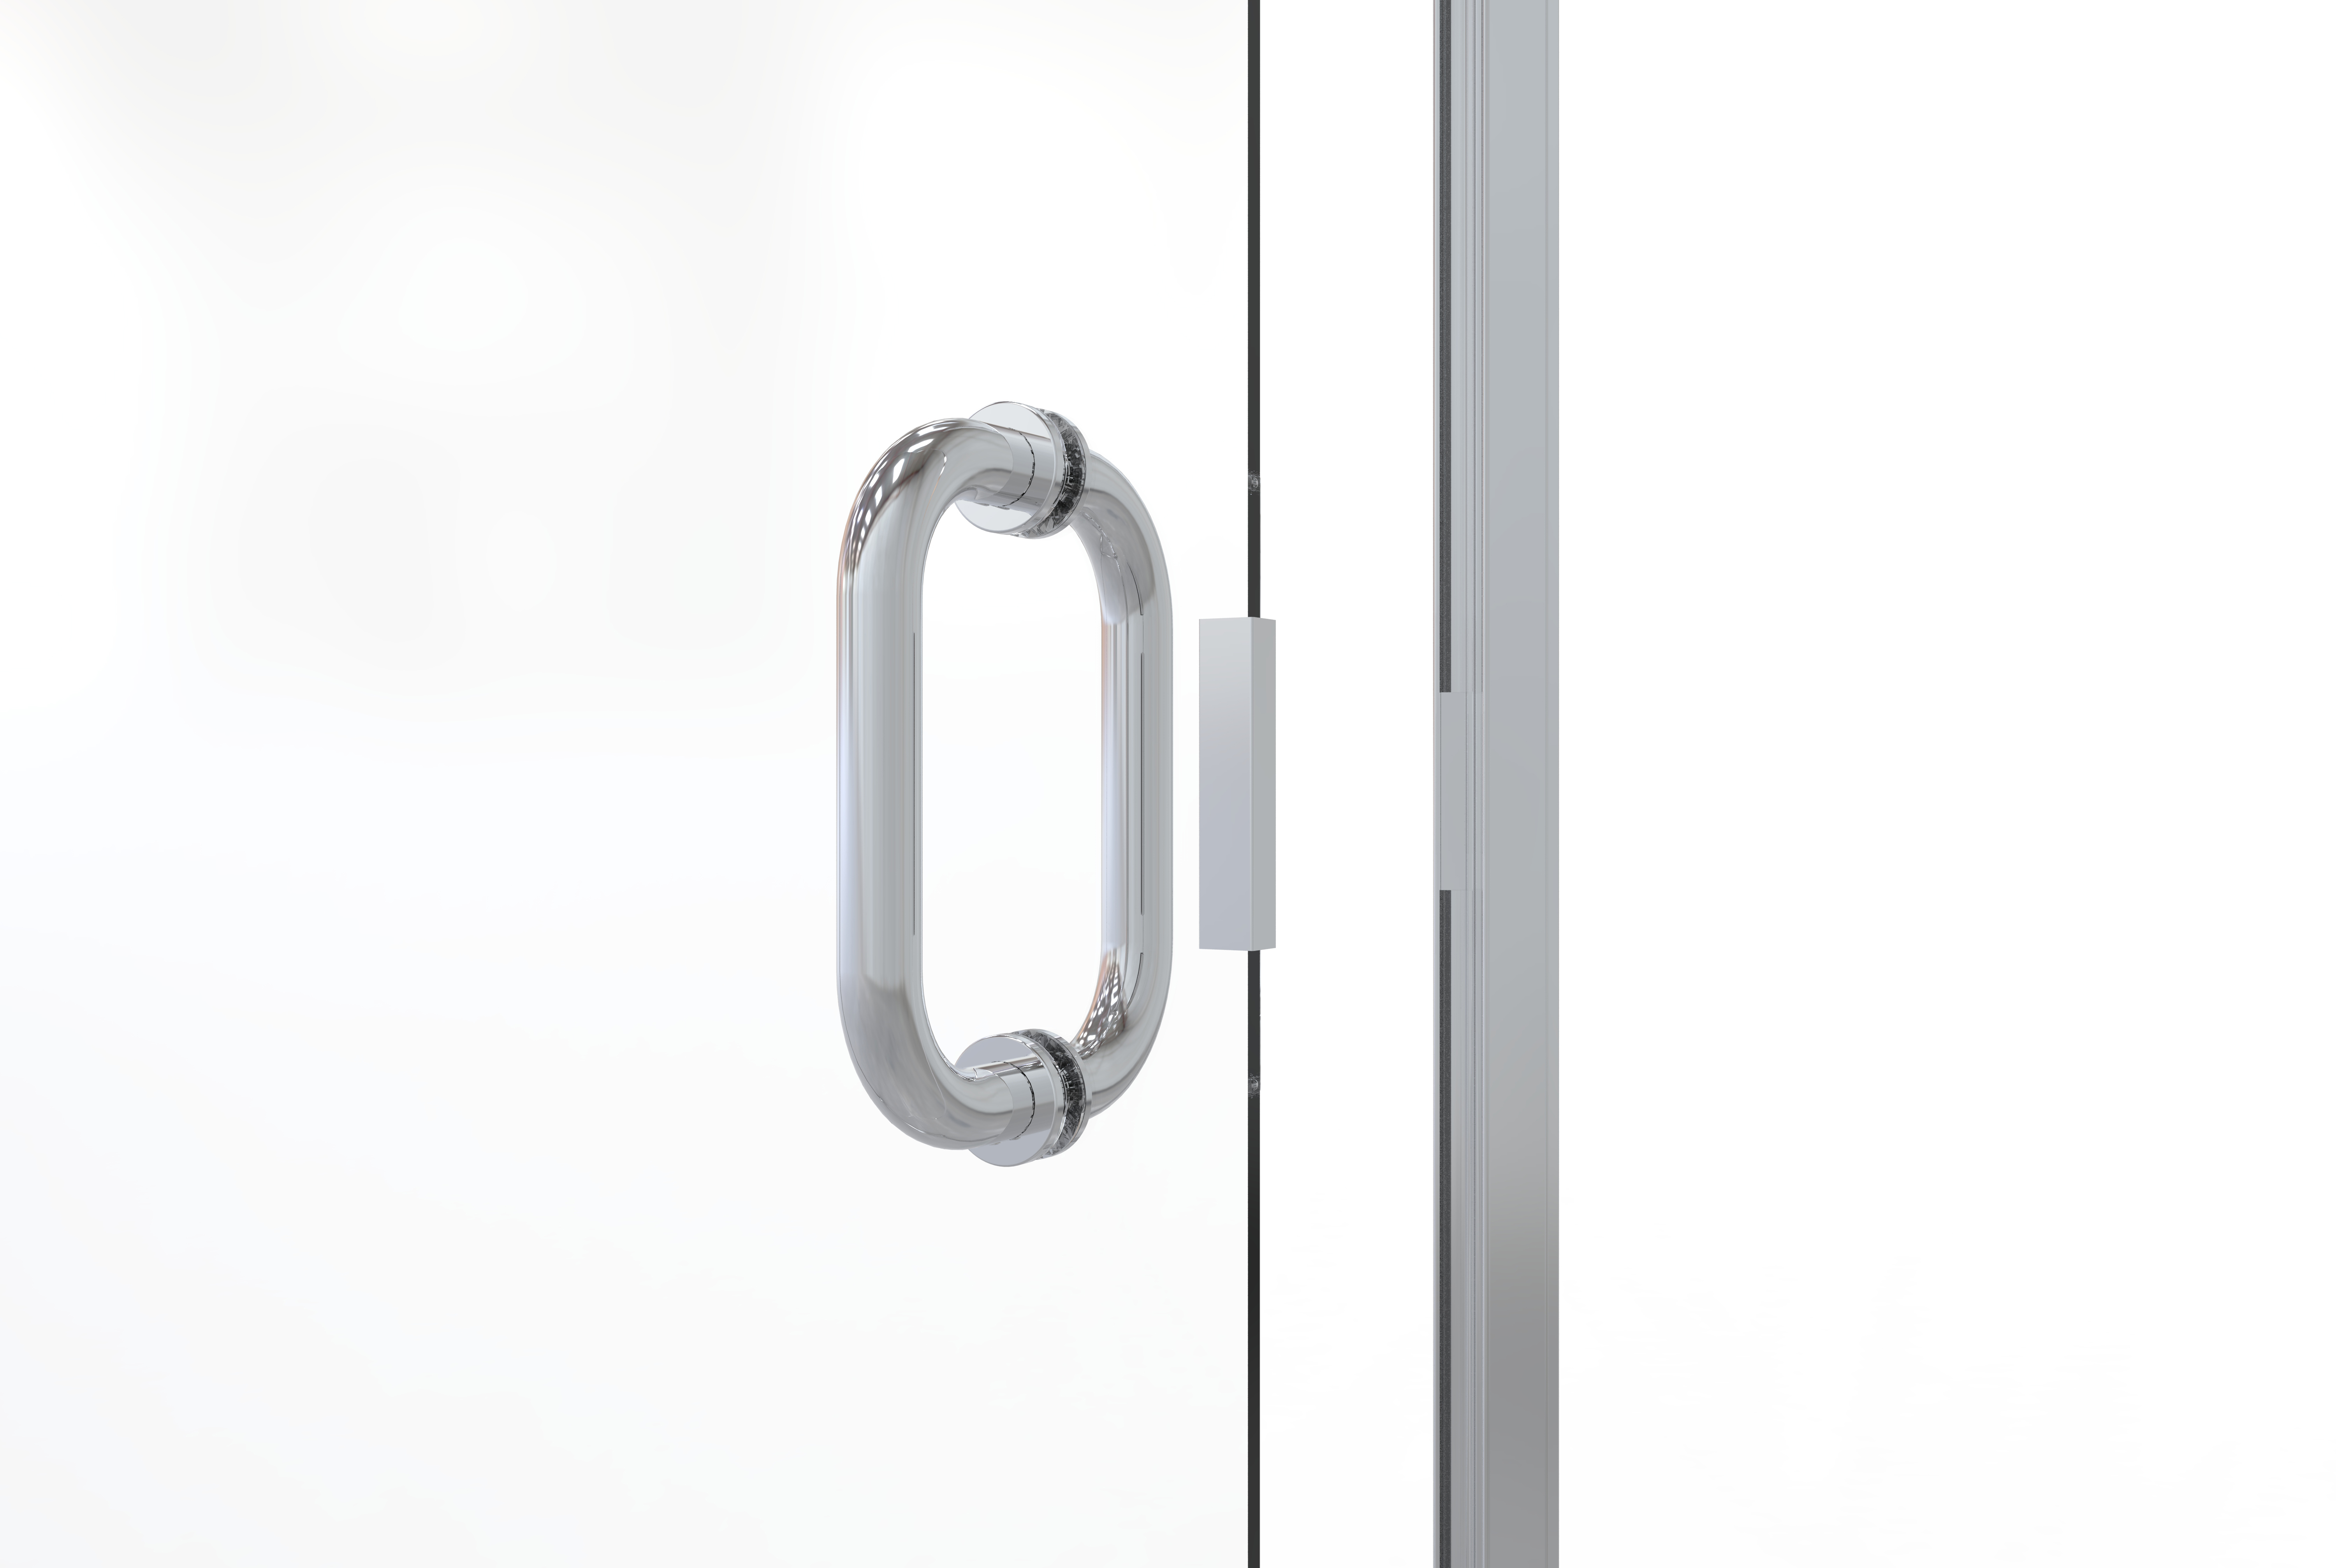 on positio for handles plastic factors their dependent pin be the door to shower need considered doors several design